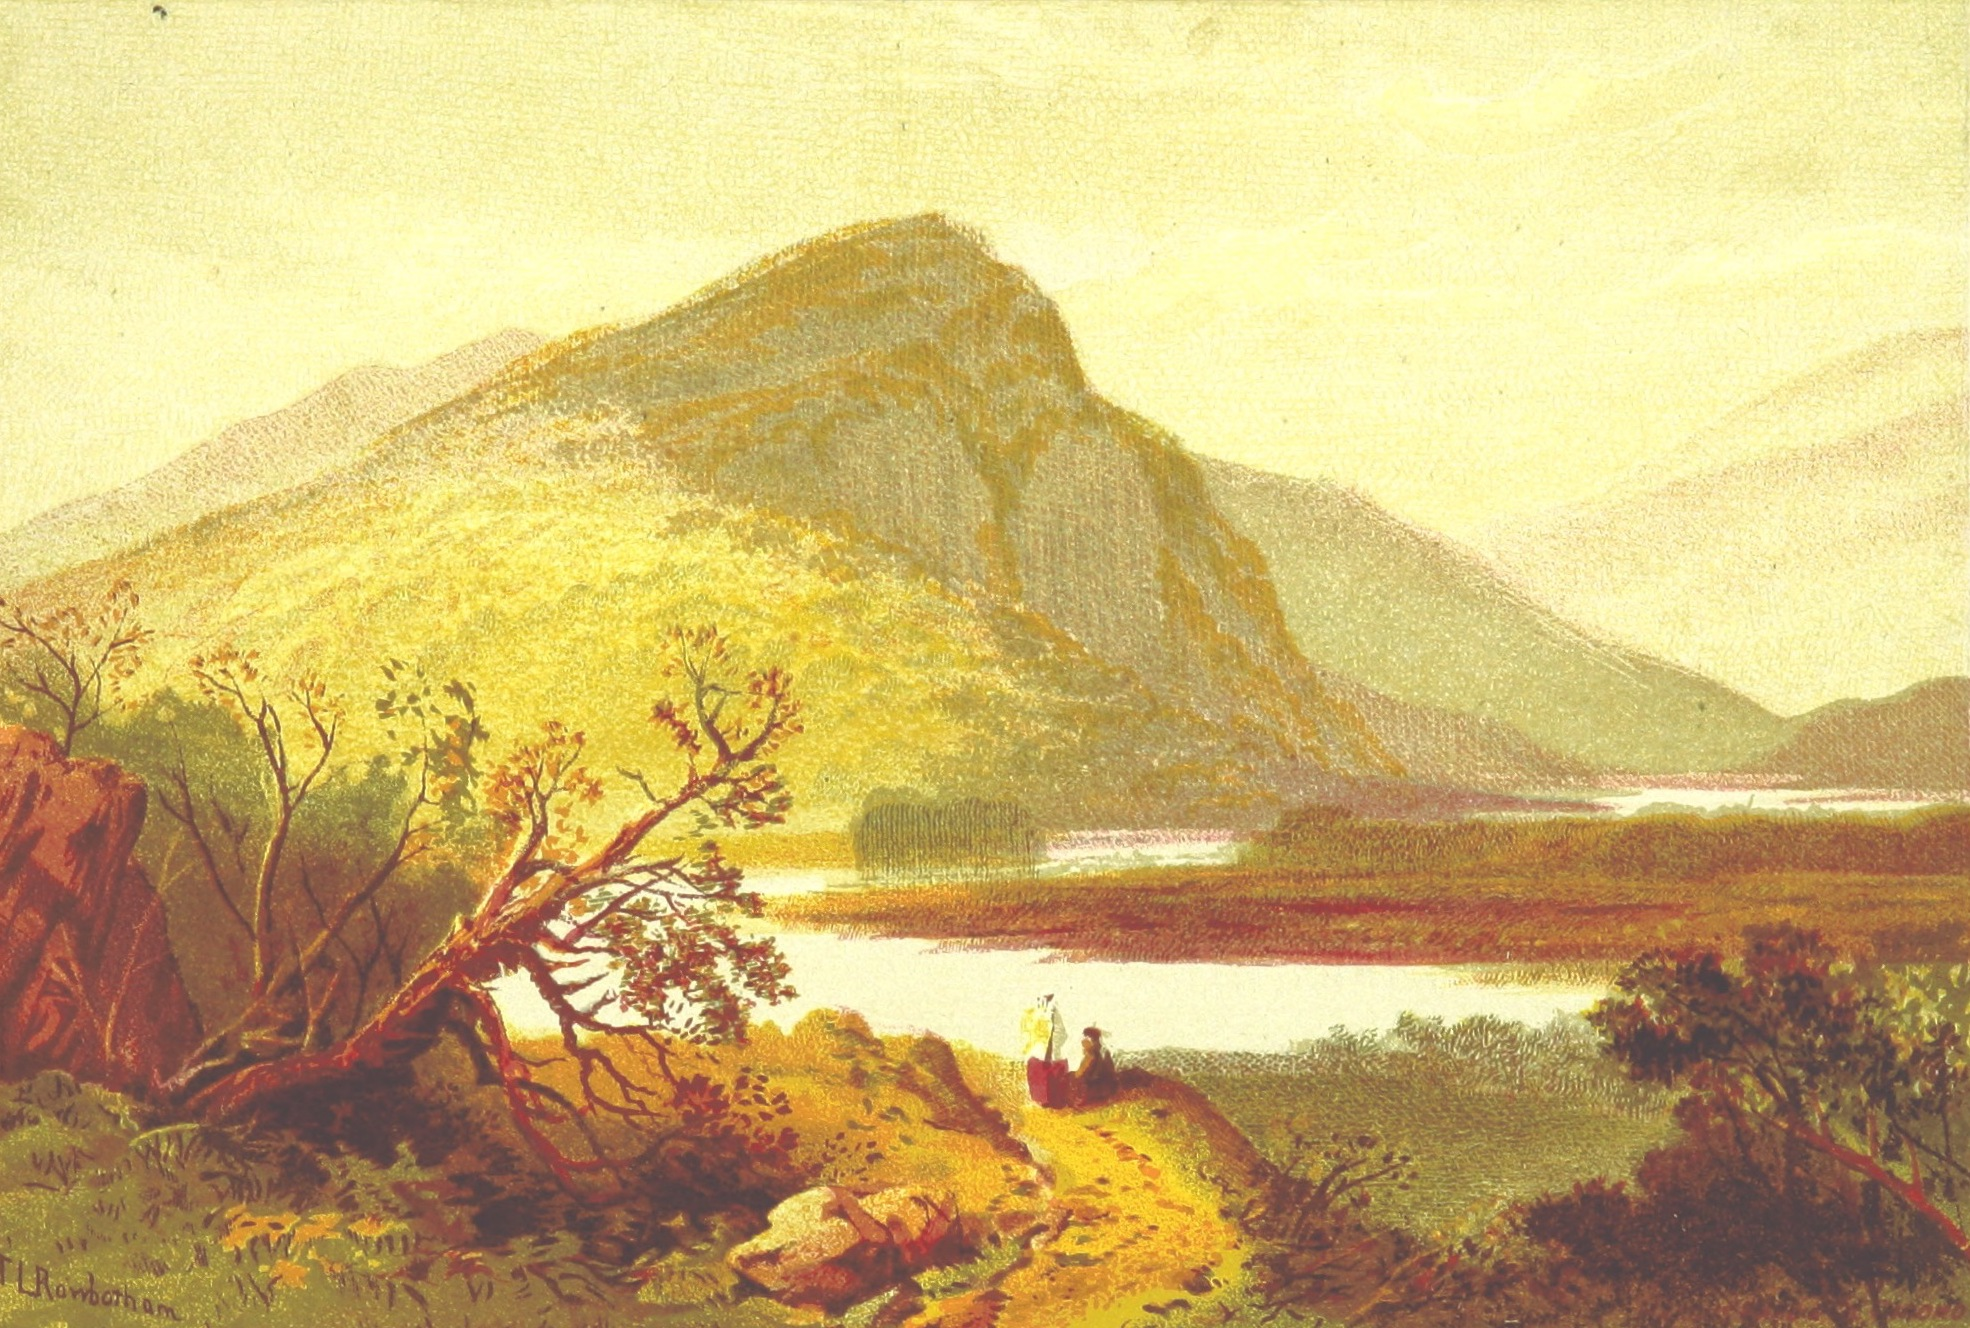 Views of Wicklow and Killarney - Eagle's Nest (1875)